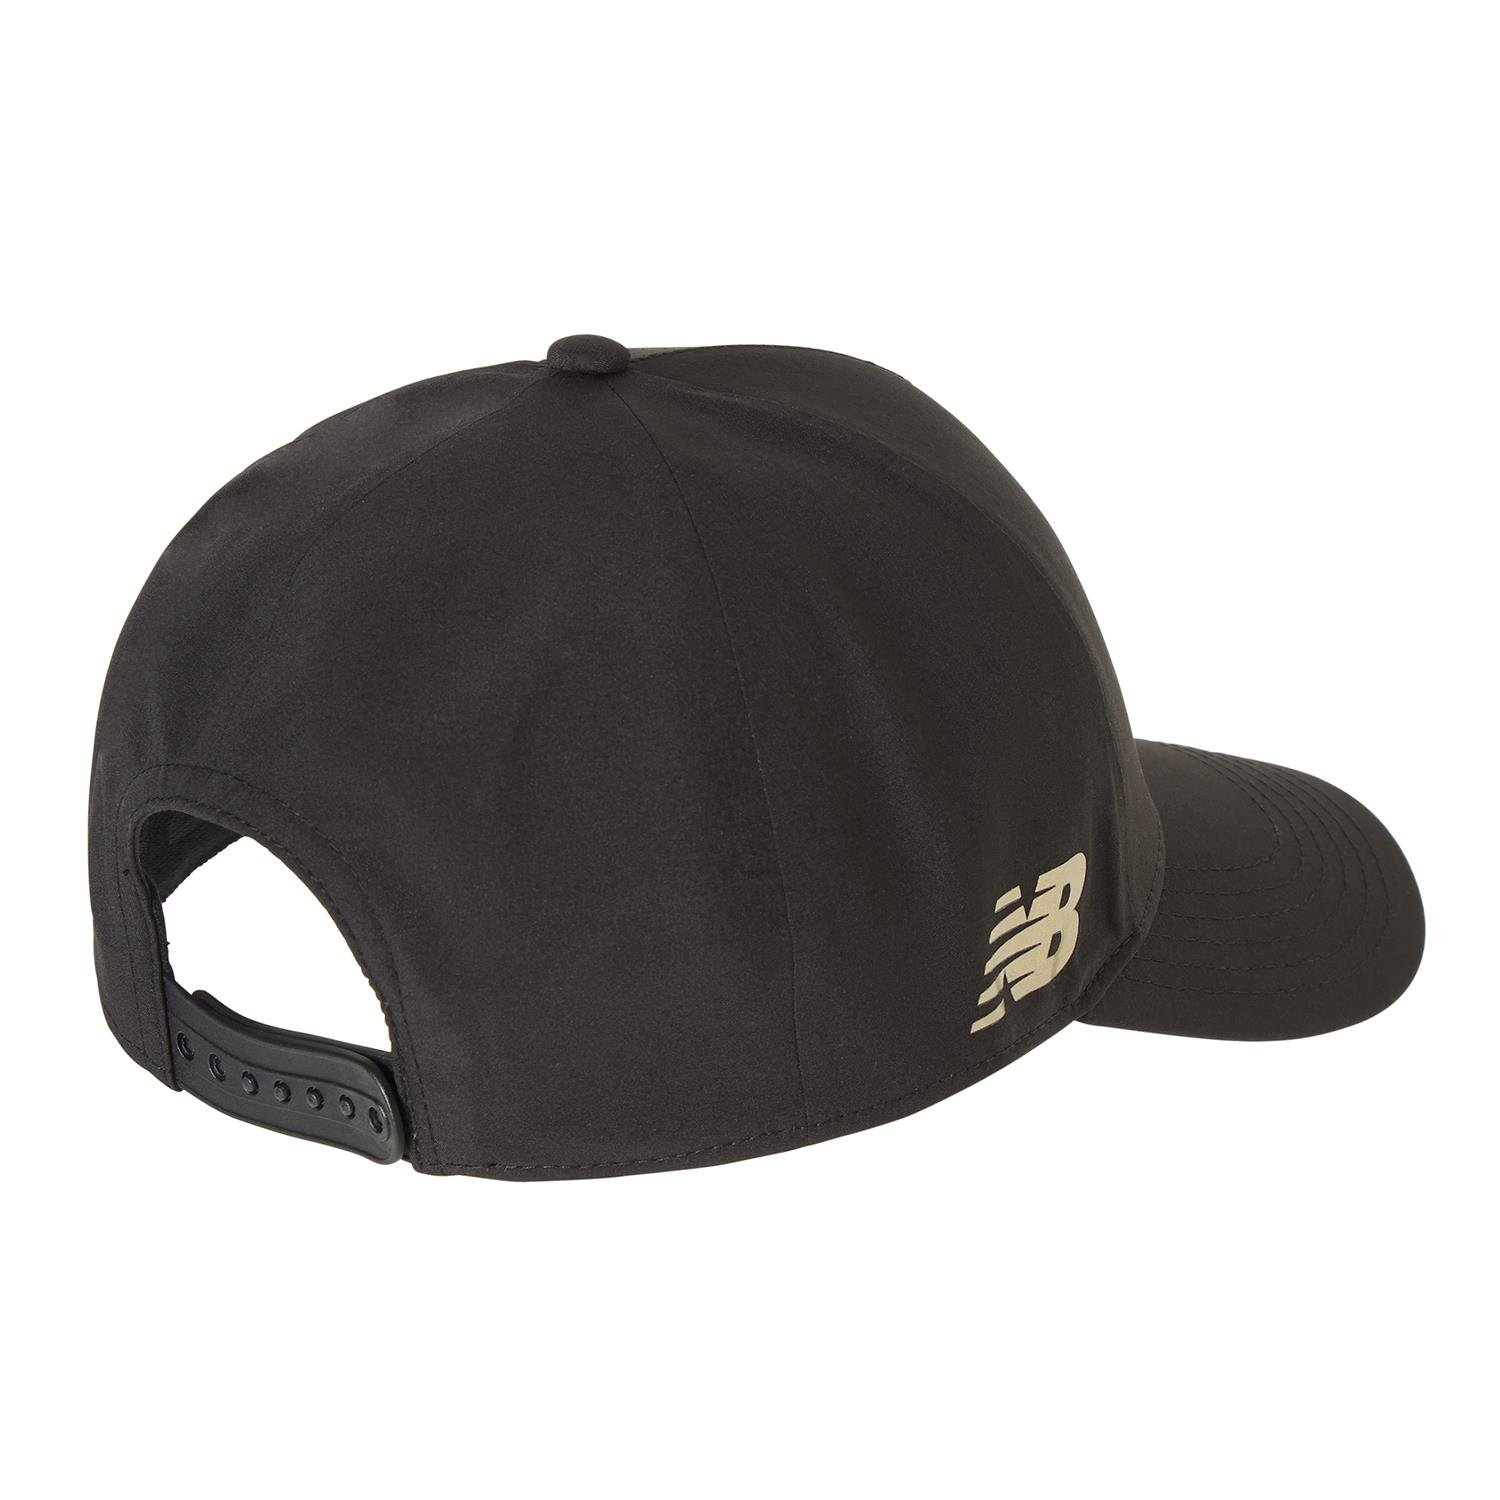 c33bc2513b0a5 New Balance Liverpool FC Managers Cap 2018-19: Amazon.co.uk: Sports &  Outdoors